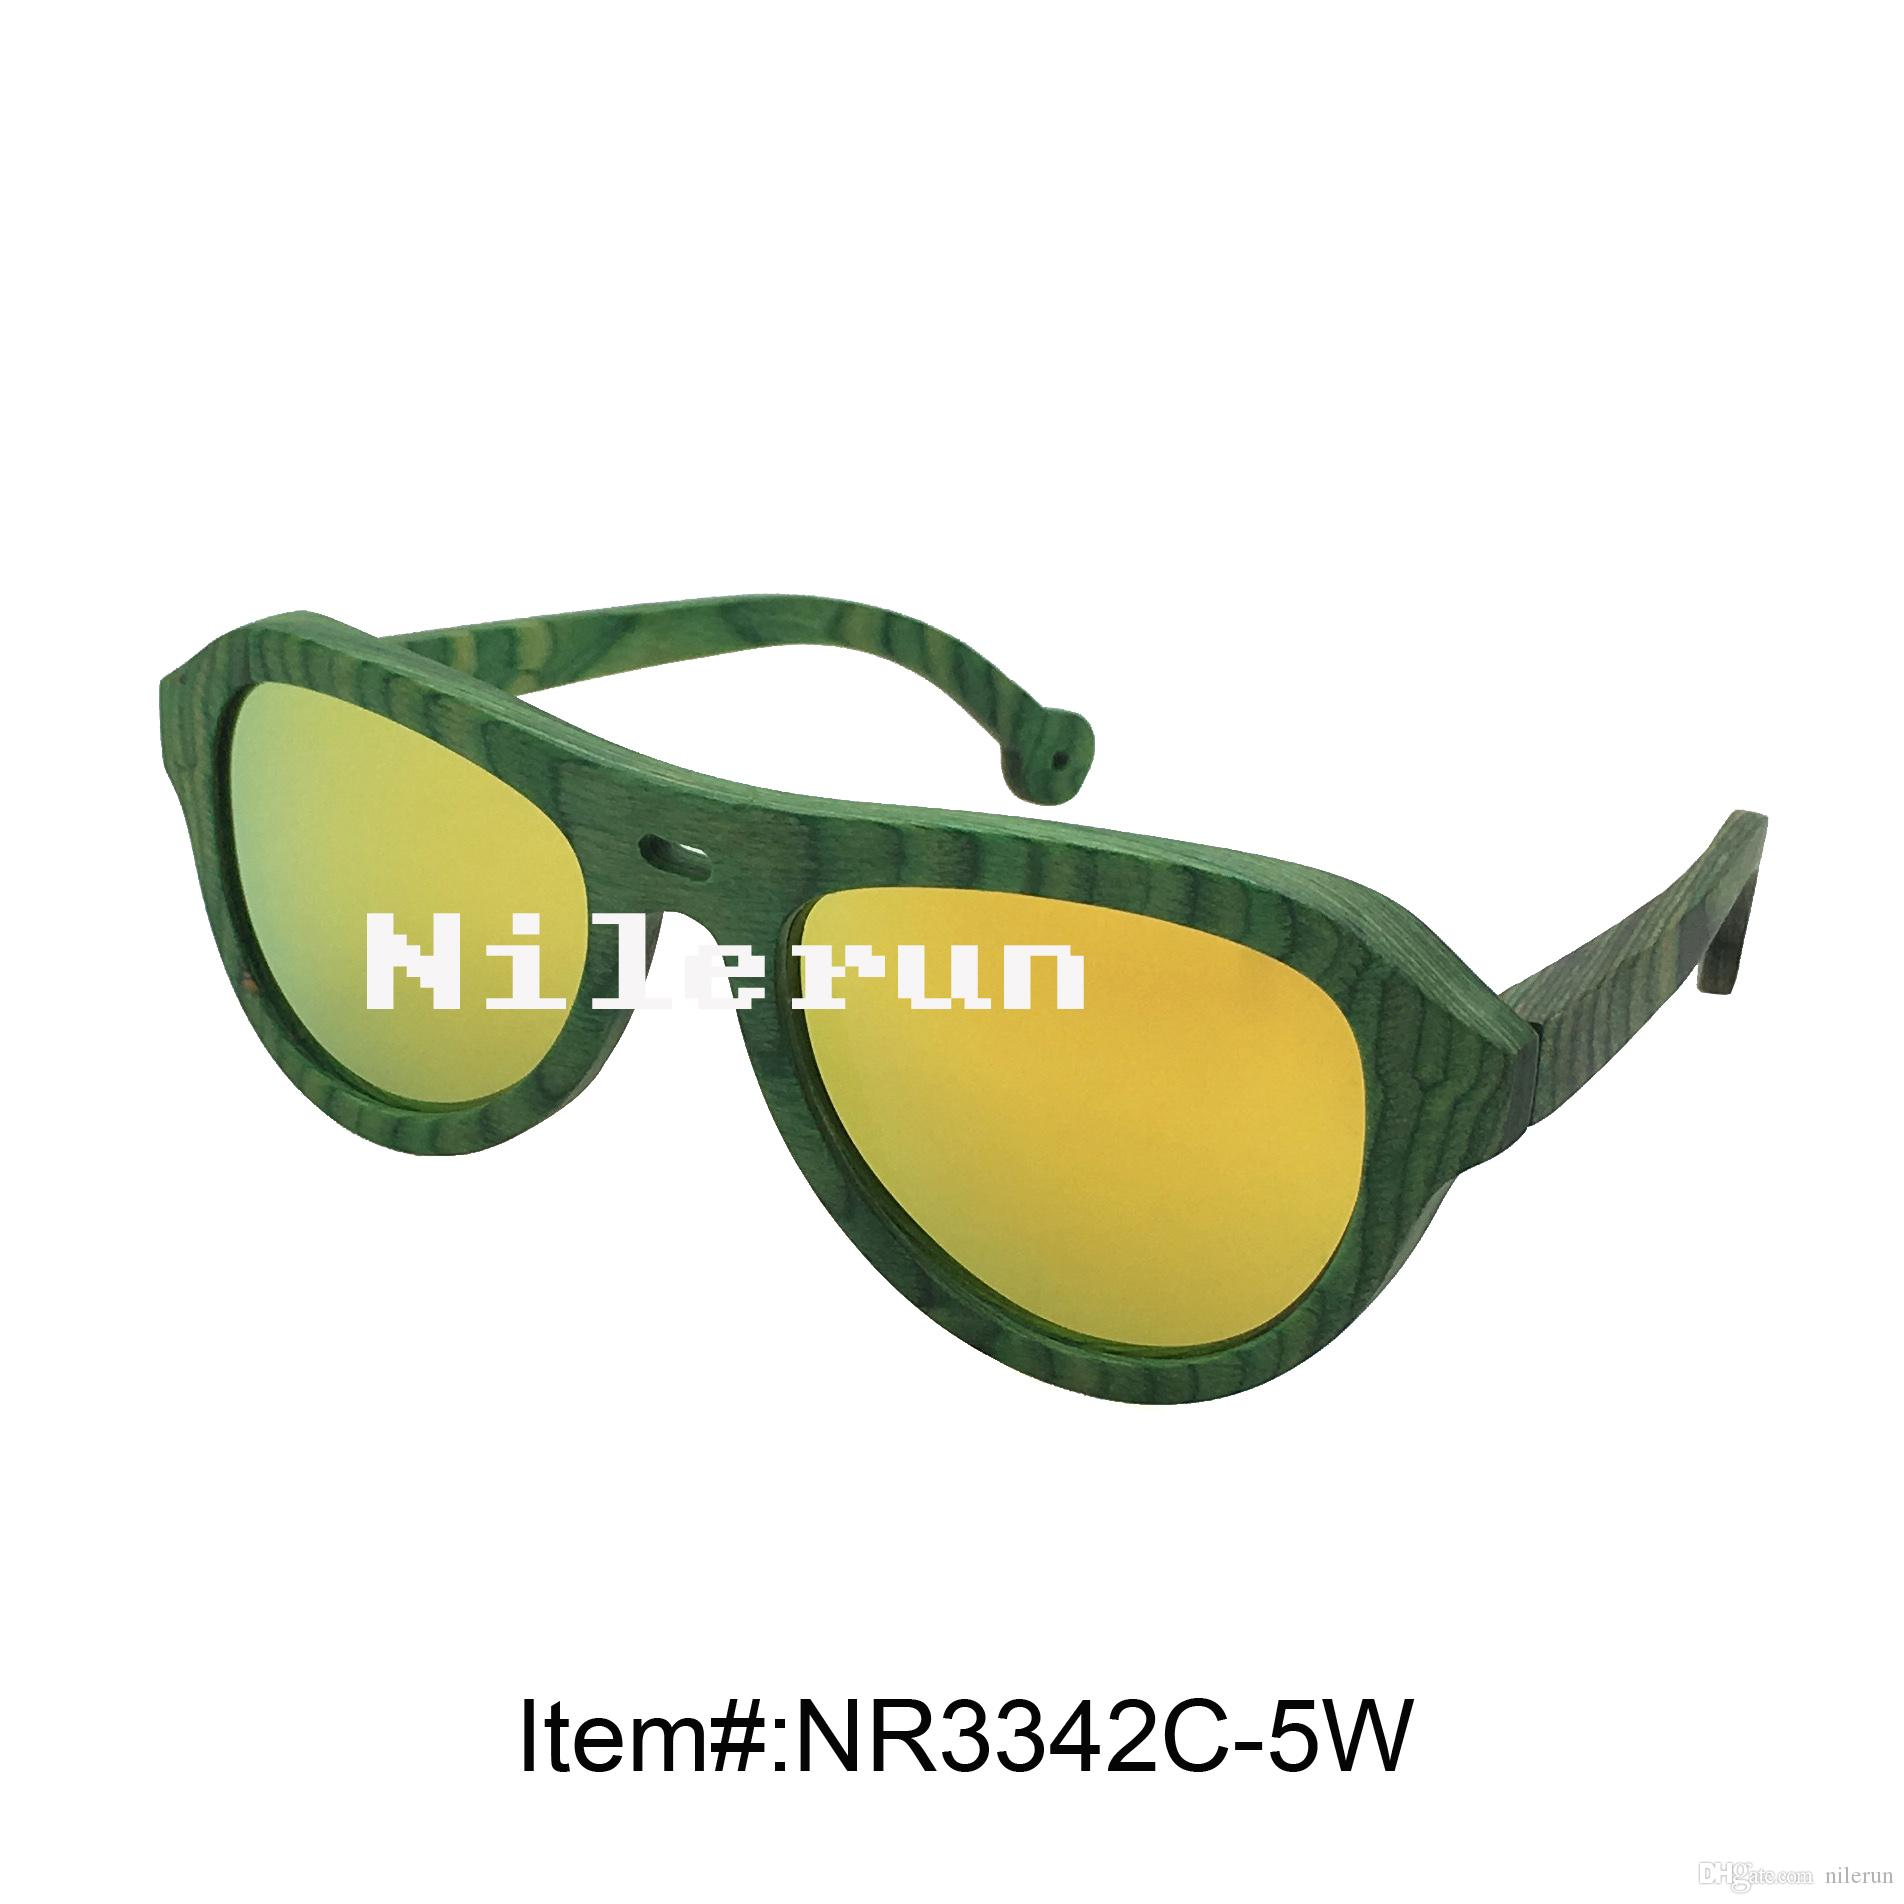 8188205c14 High Quality Luxury Real Yellow Polarized Lenses Green Engineered Wood  Sunglasses Engineered Wood Sunglasses Sunglasses Green Wood Sunglasses  Online with ...